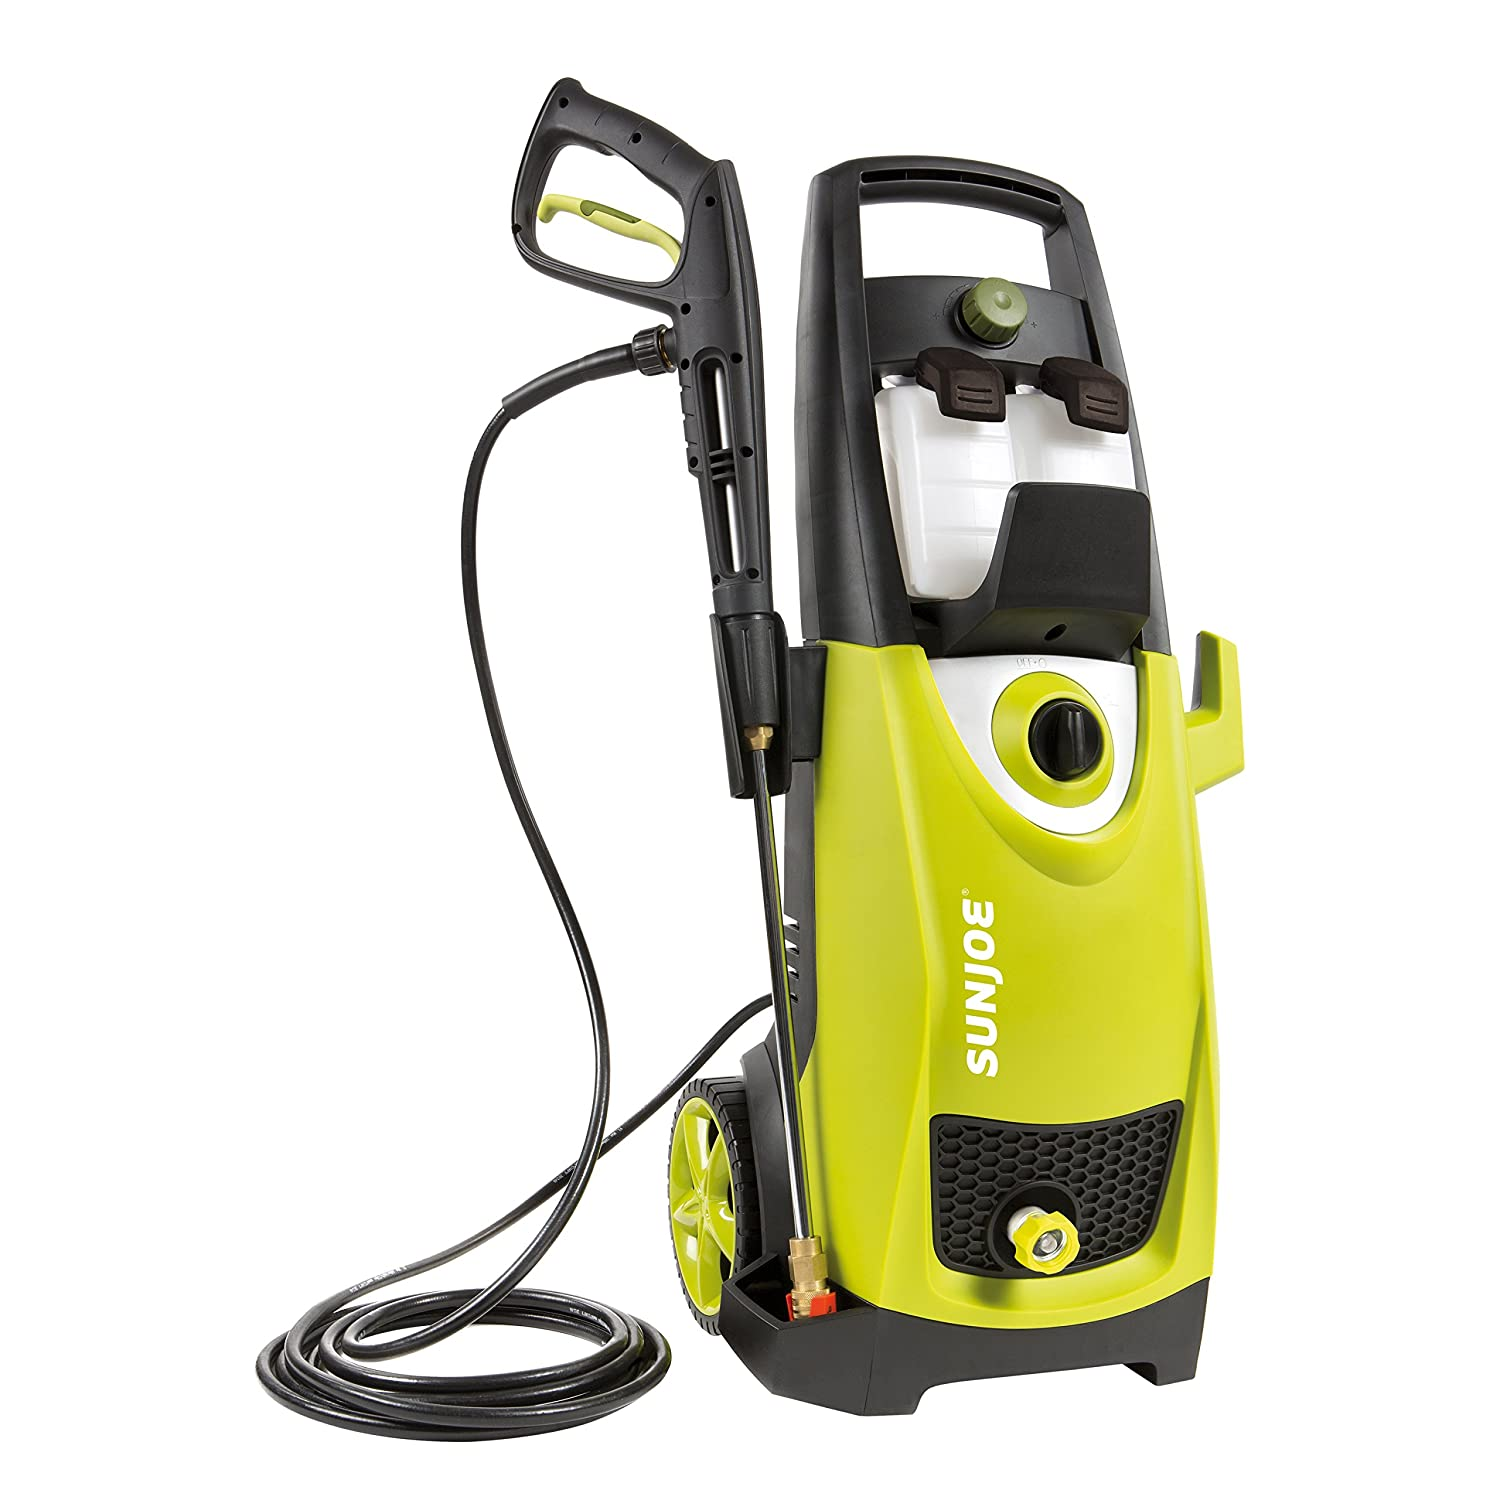 Top 10 Best Pressure Washer Reviews 2018-2019 on Flipboard by Kinida